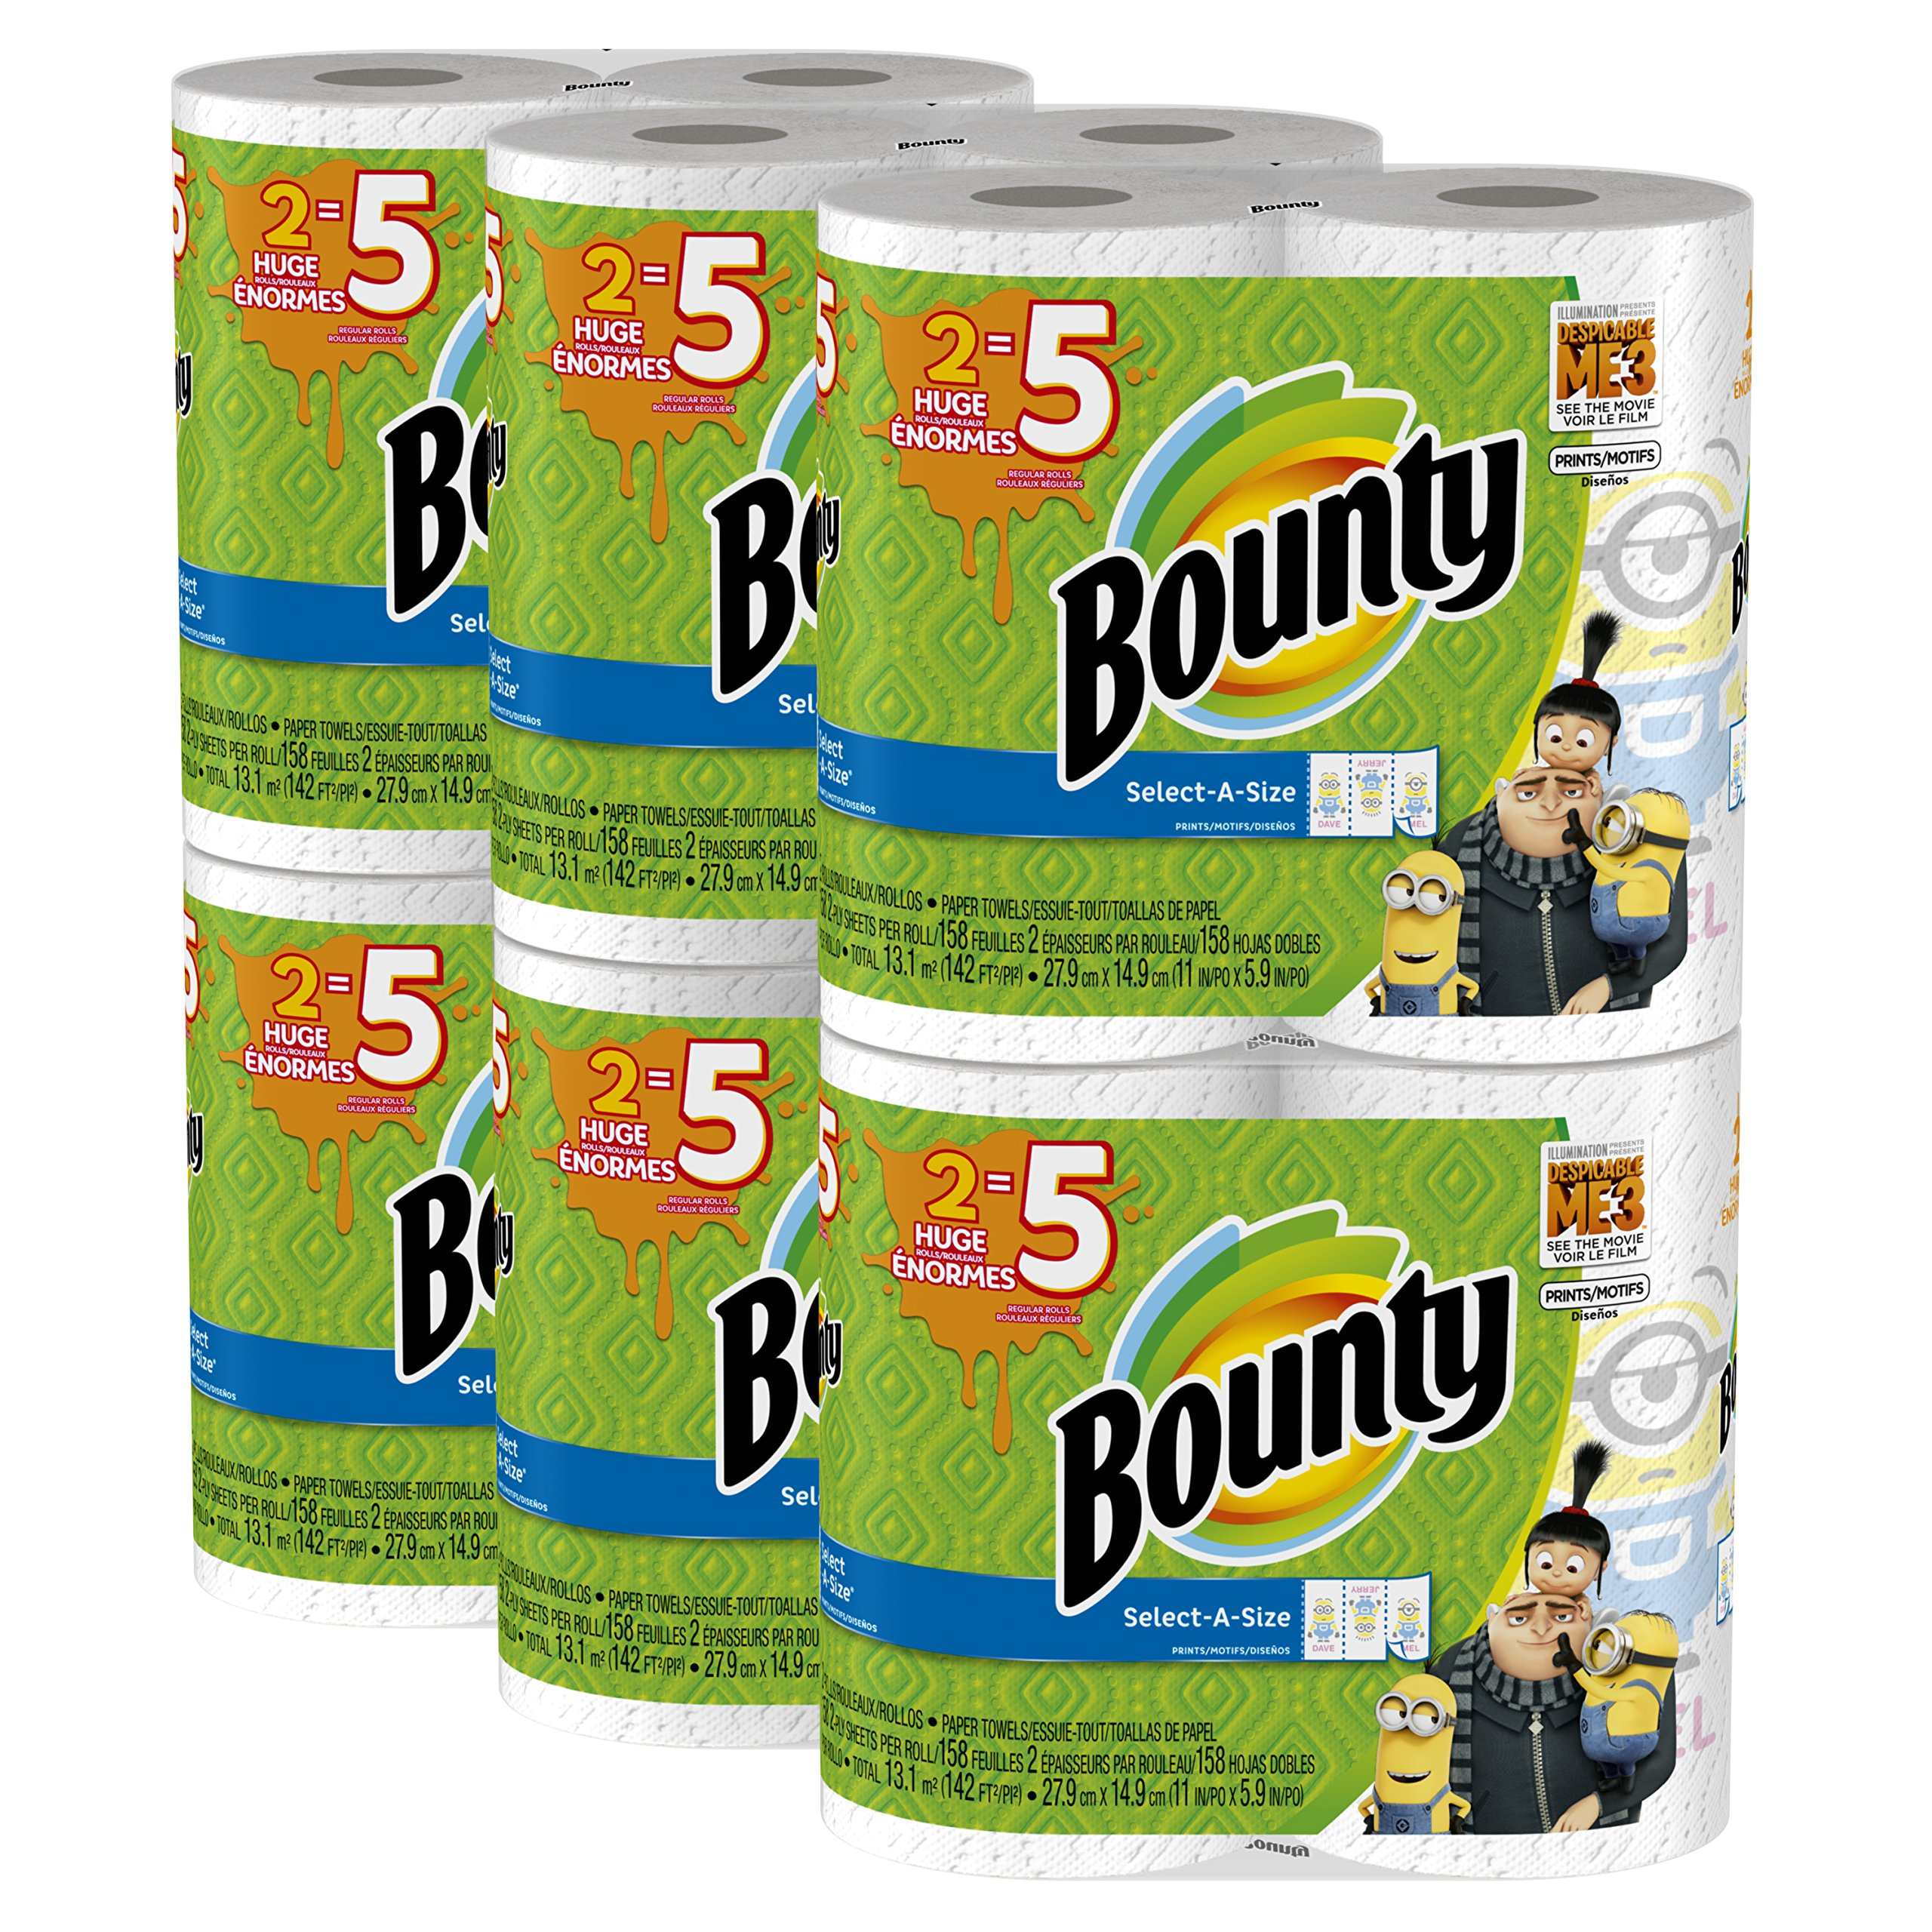 Bounty Paper Towels Fall Prints: Bounty Despicable Me 3 Select-A-Size Paper Towels With